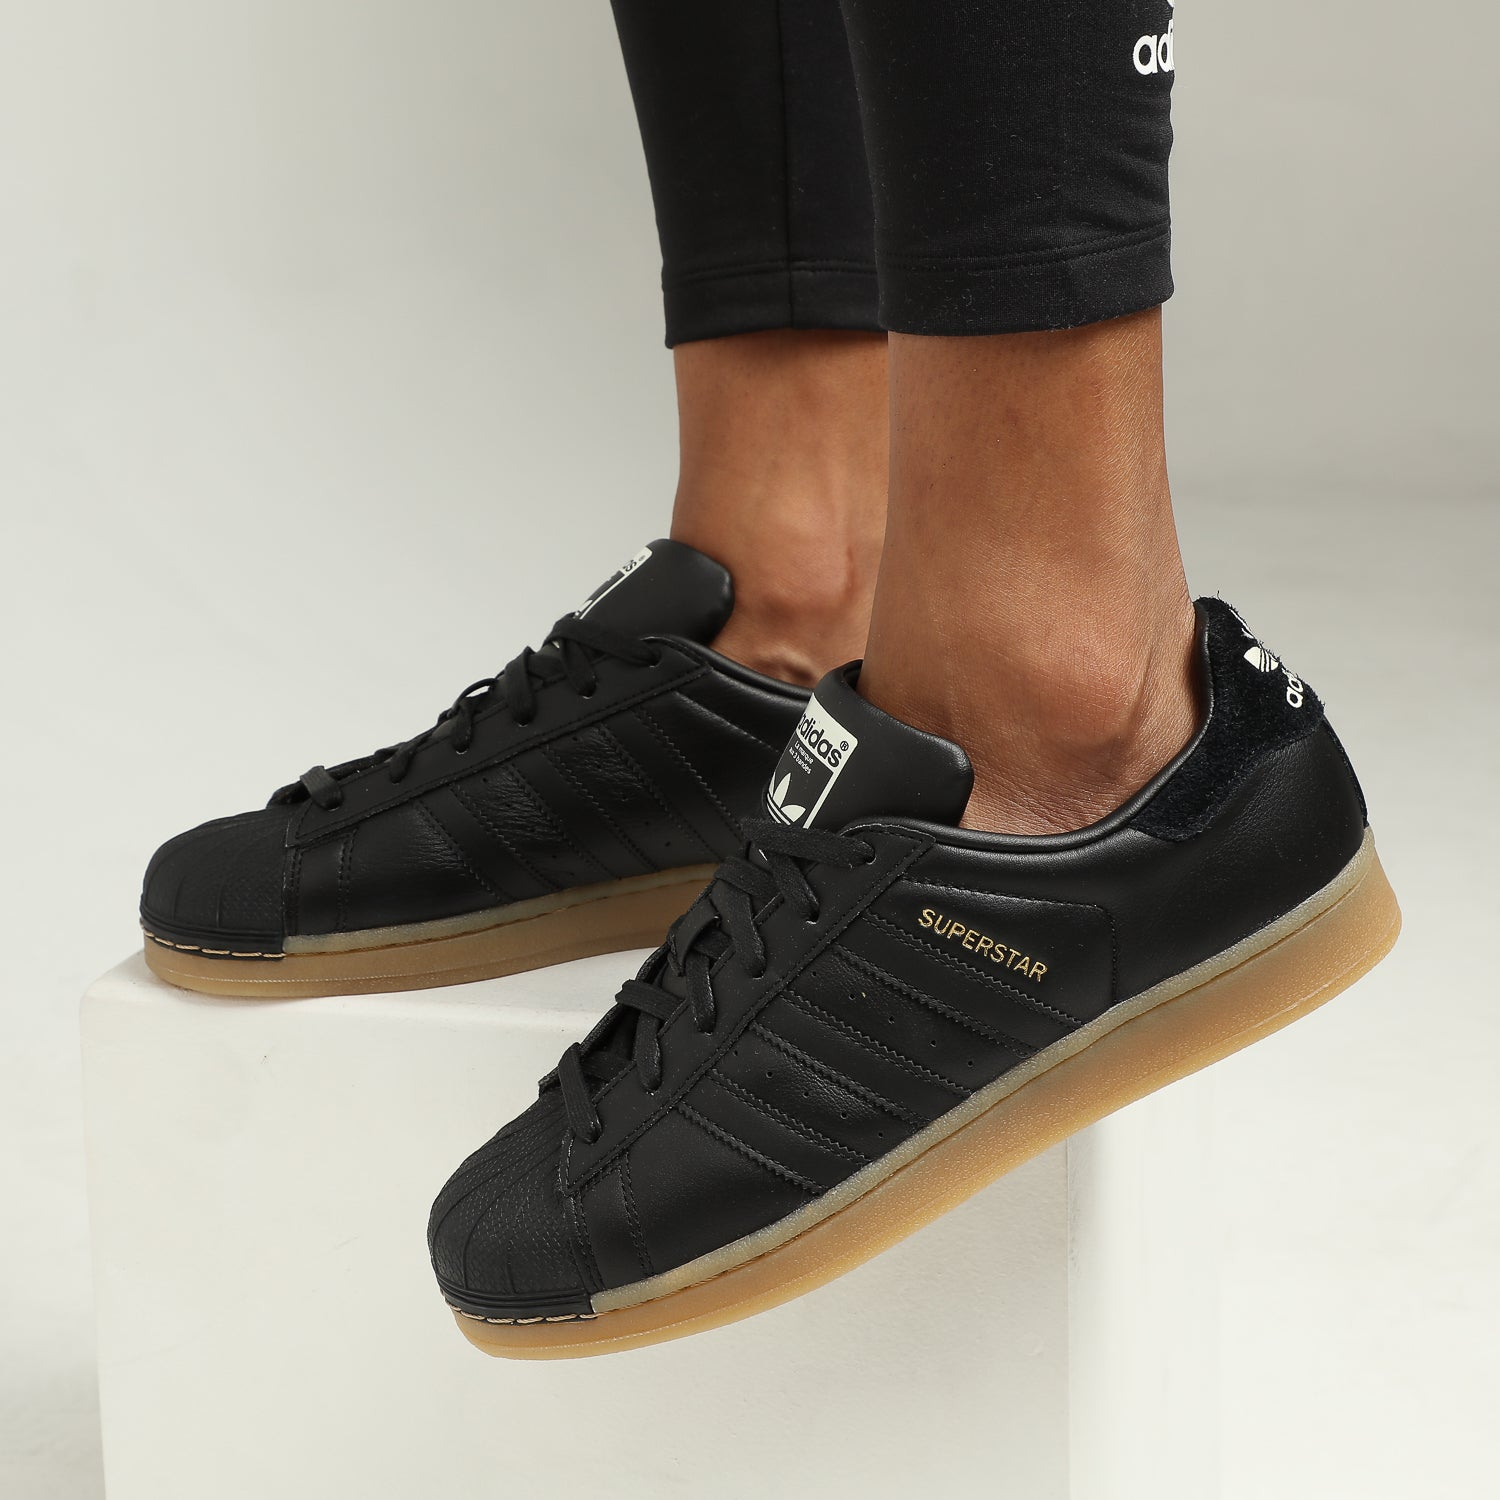 adidas superstar black gum